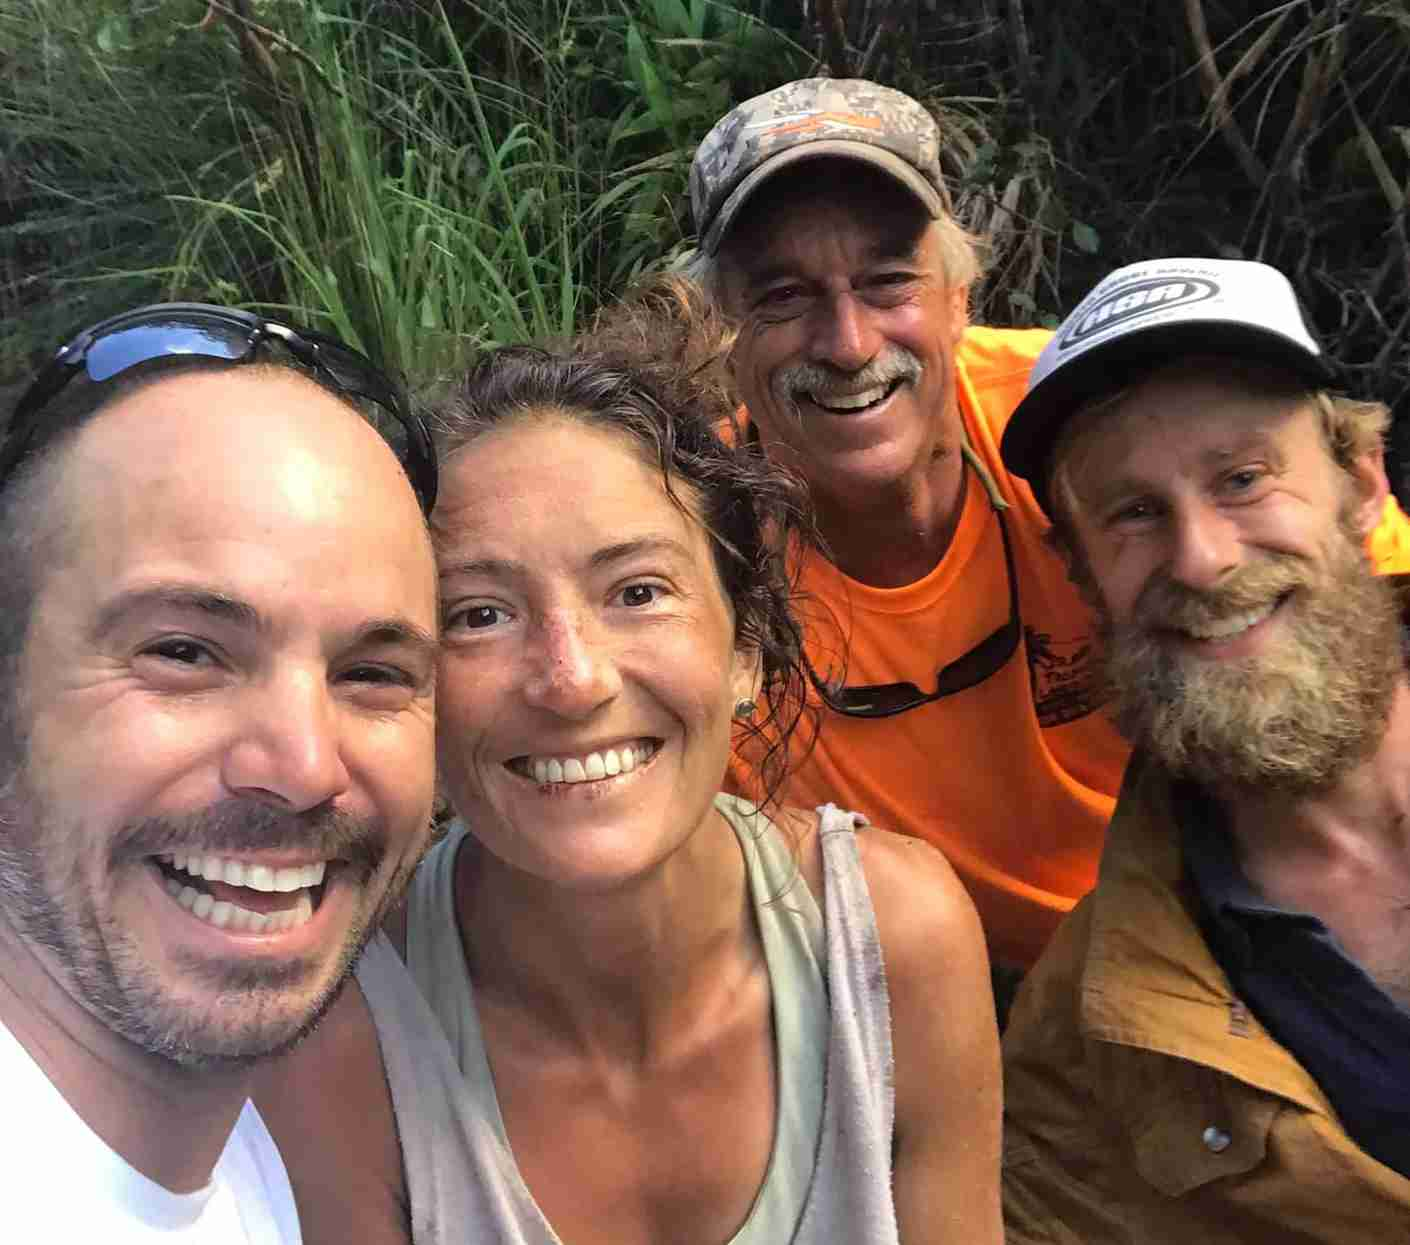 The rescue team that found Amanda Eller after 17 days lost in a Maui forest (Photo by JAVIER CANTELLOPS / Contributor / Getty Images )